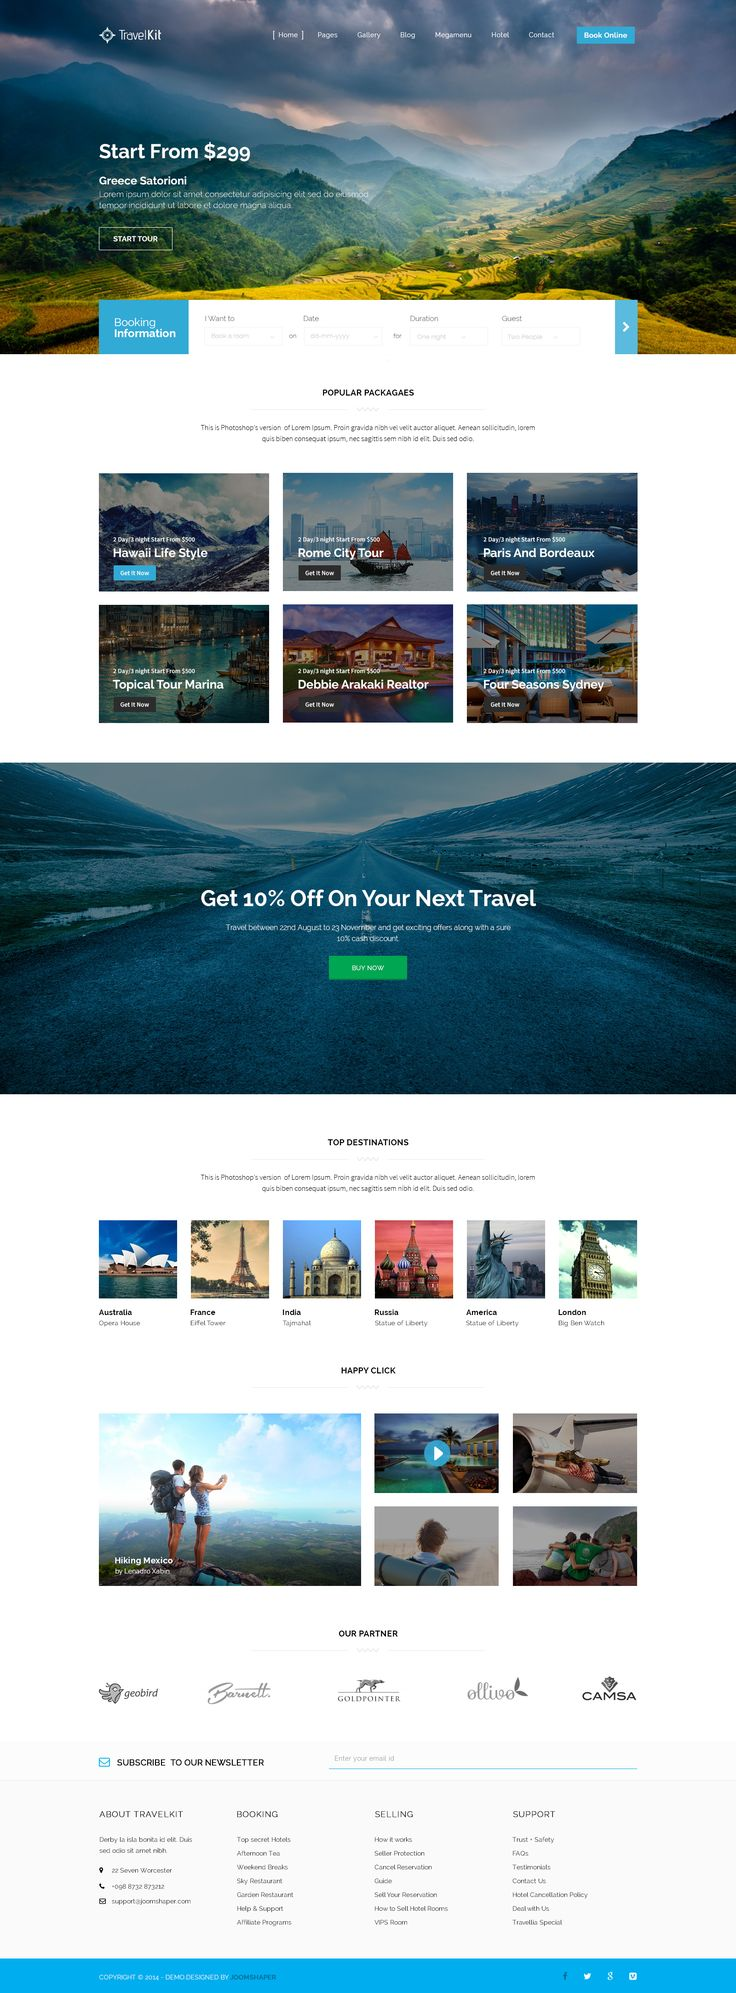 Beautiful website design for travel company with